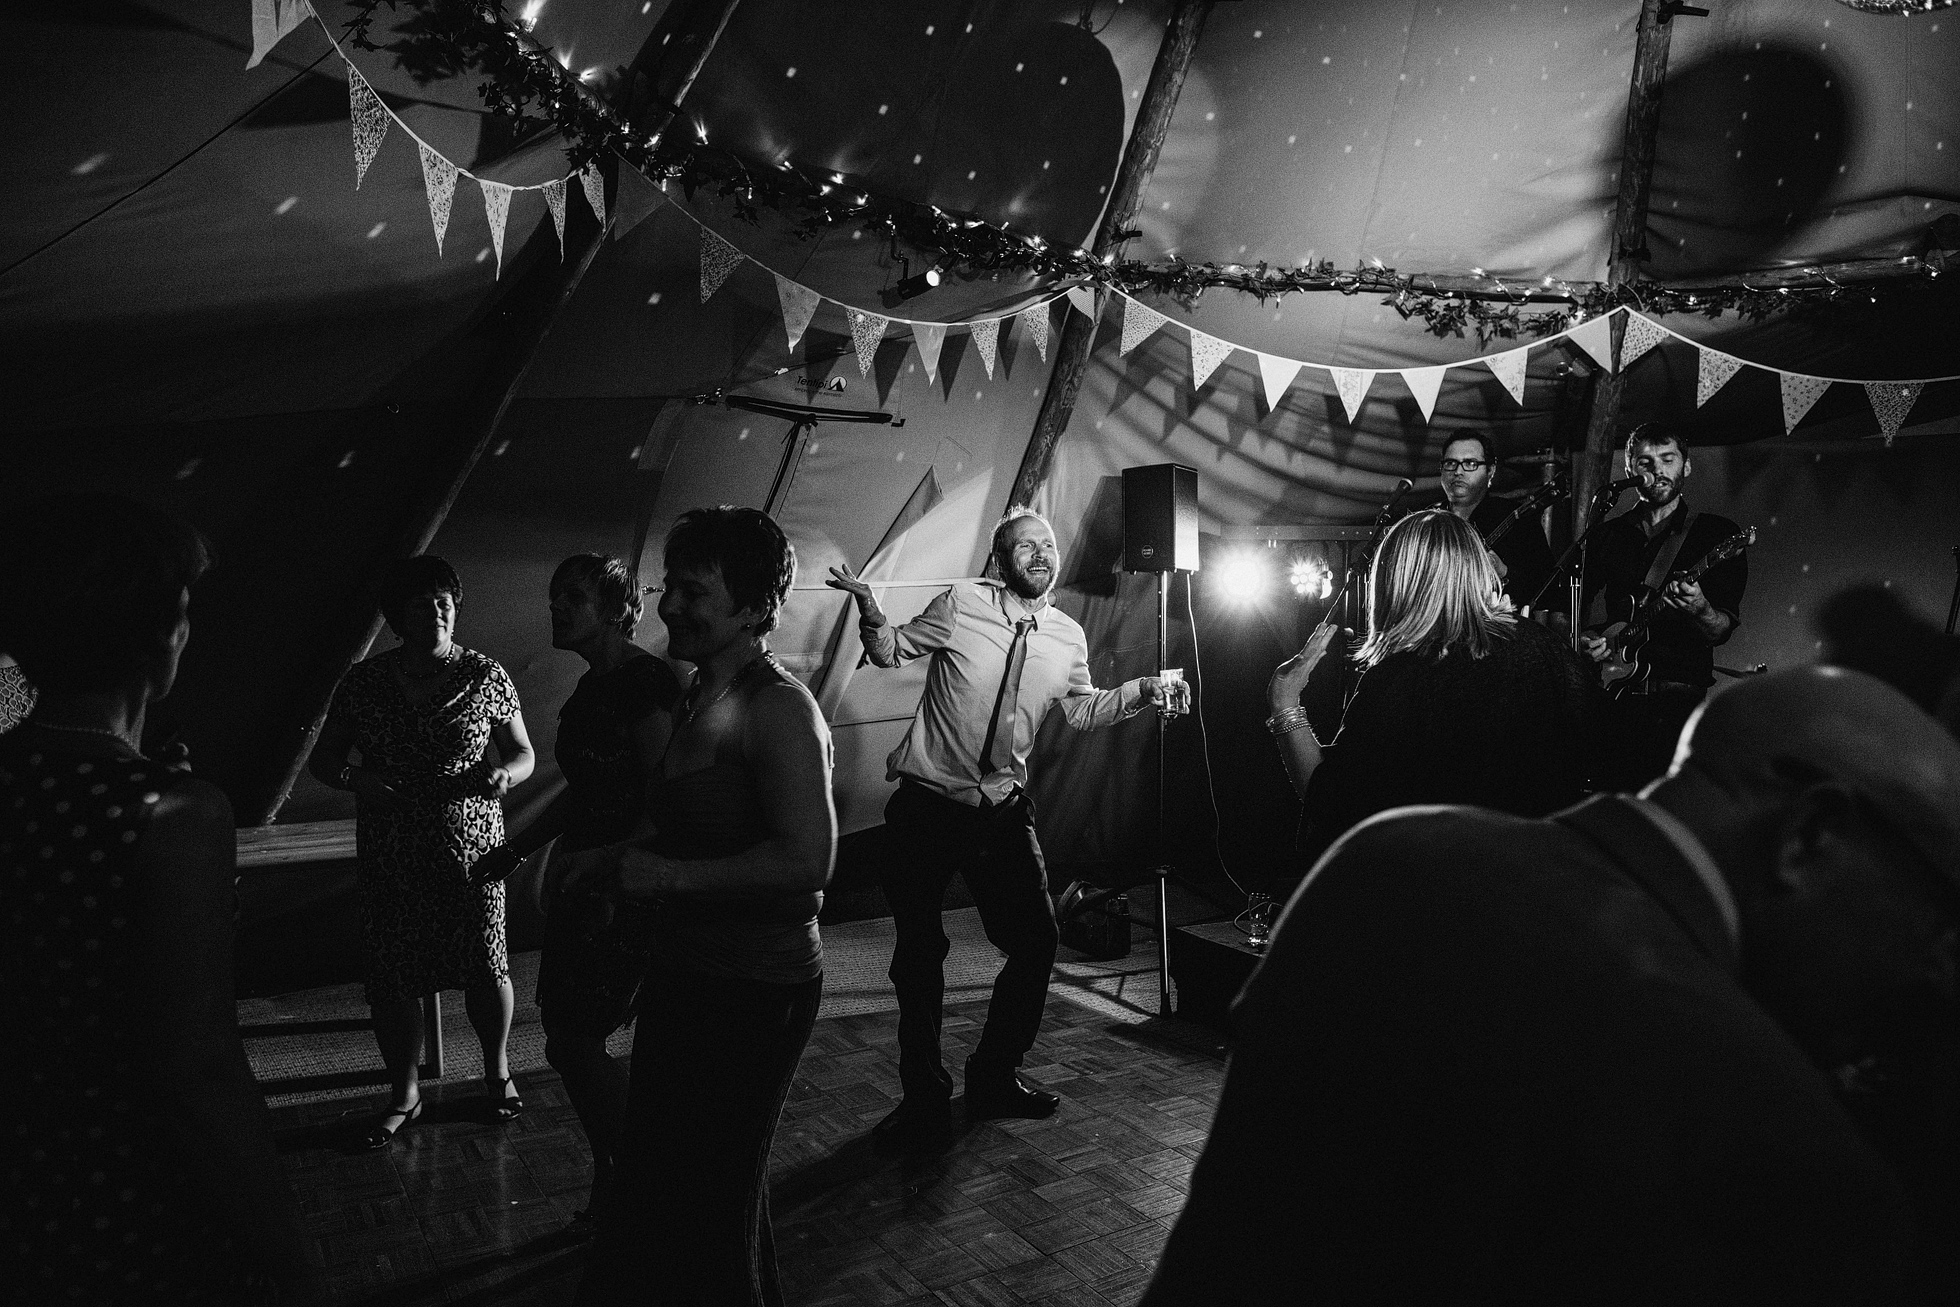 Low Light Wedding Photography with the Fuji X-T1 & Leica M